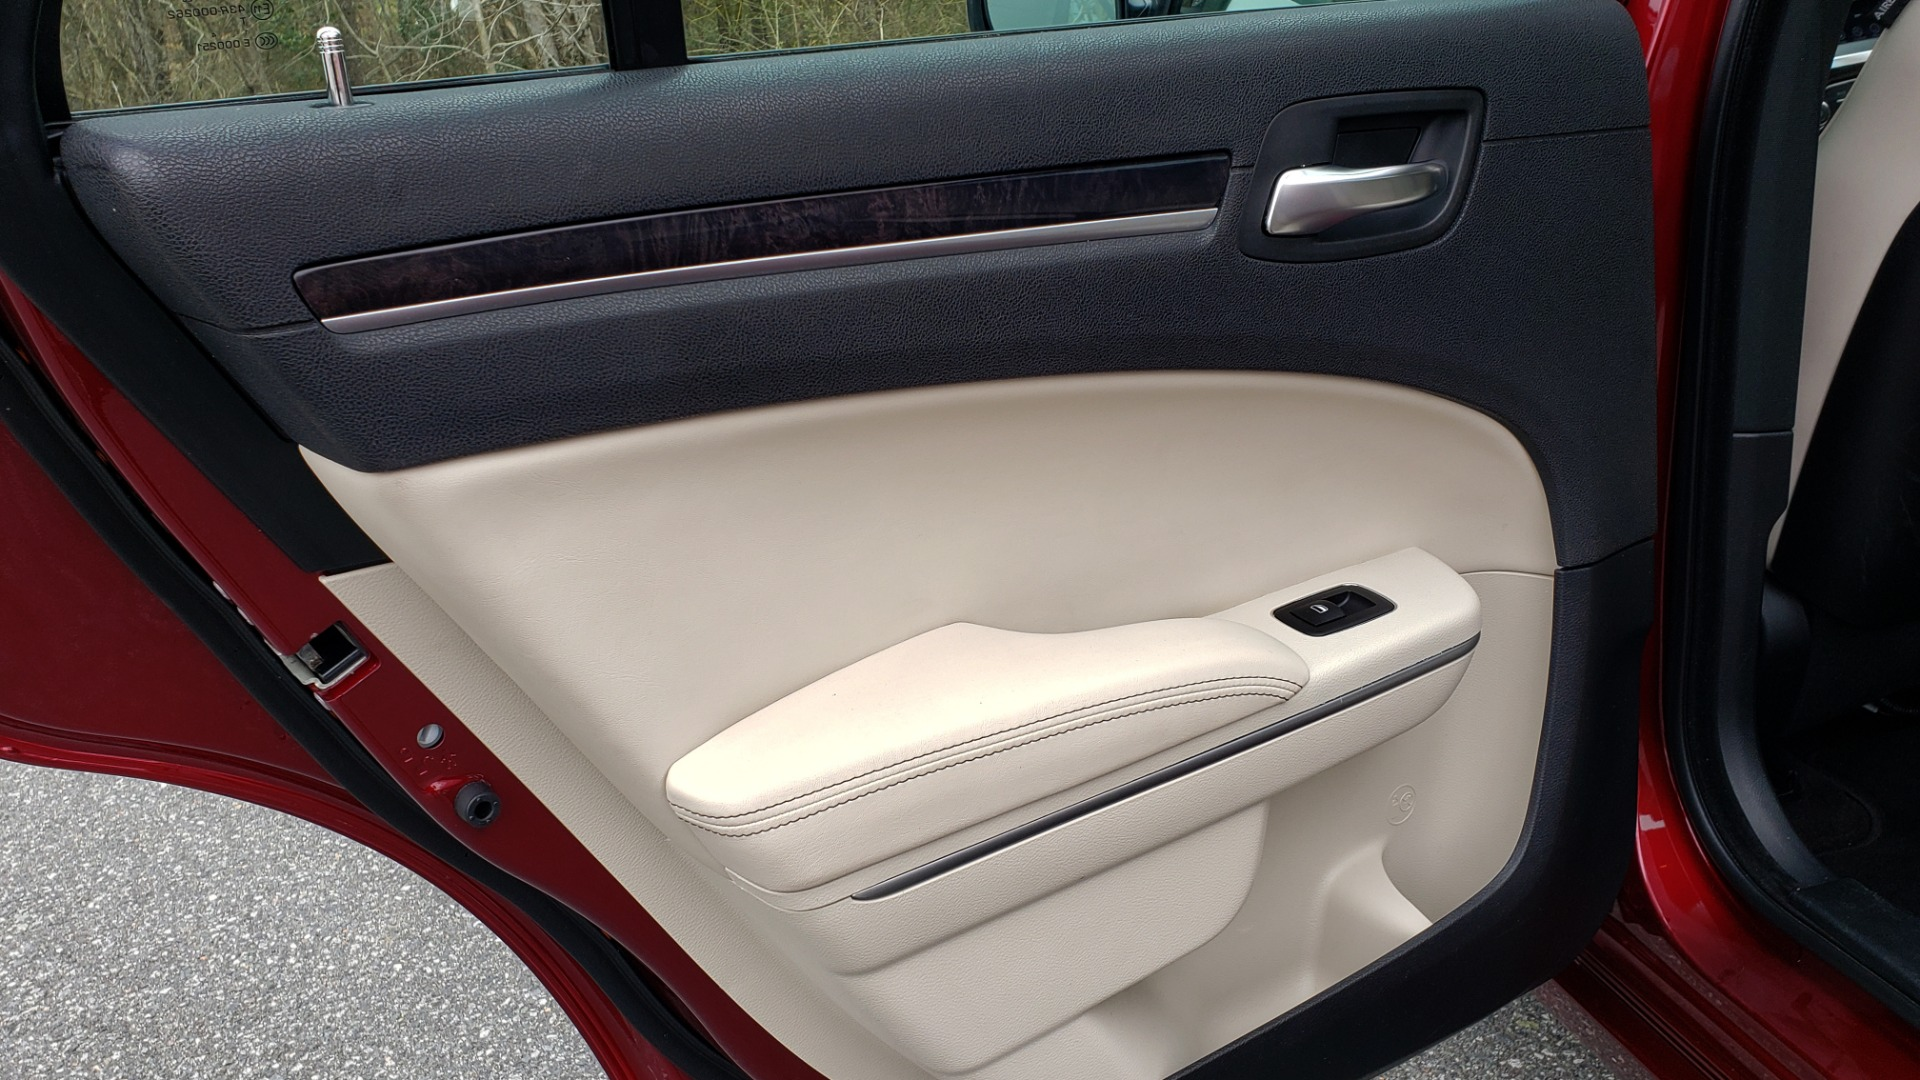 Used 2019 Chrysler 300 LIMITED / 3.6L V6 / 8-SPD AUTO / LEATHER / REARVIEW for sale Sold at Formula Imports in Charlotte NC 28227 60